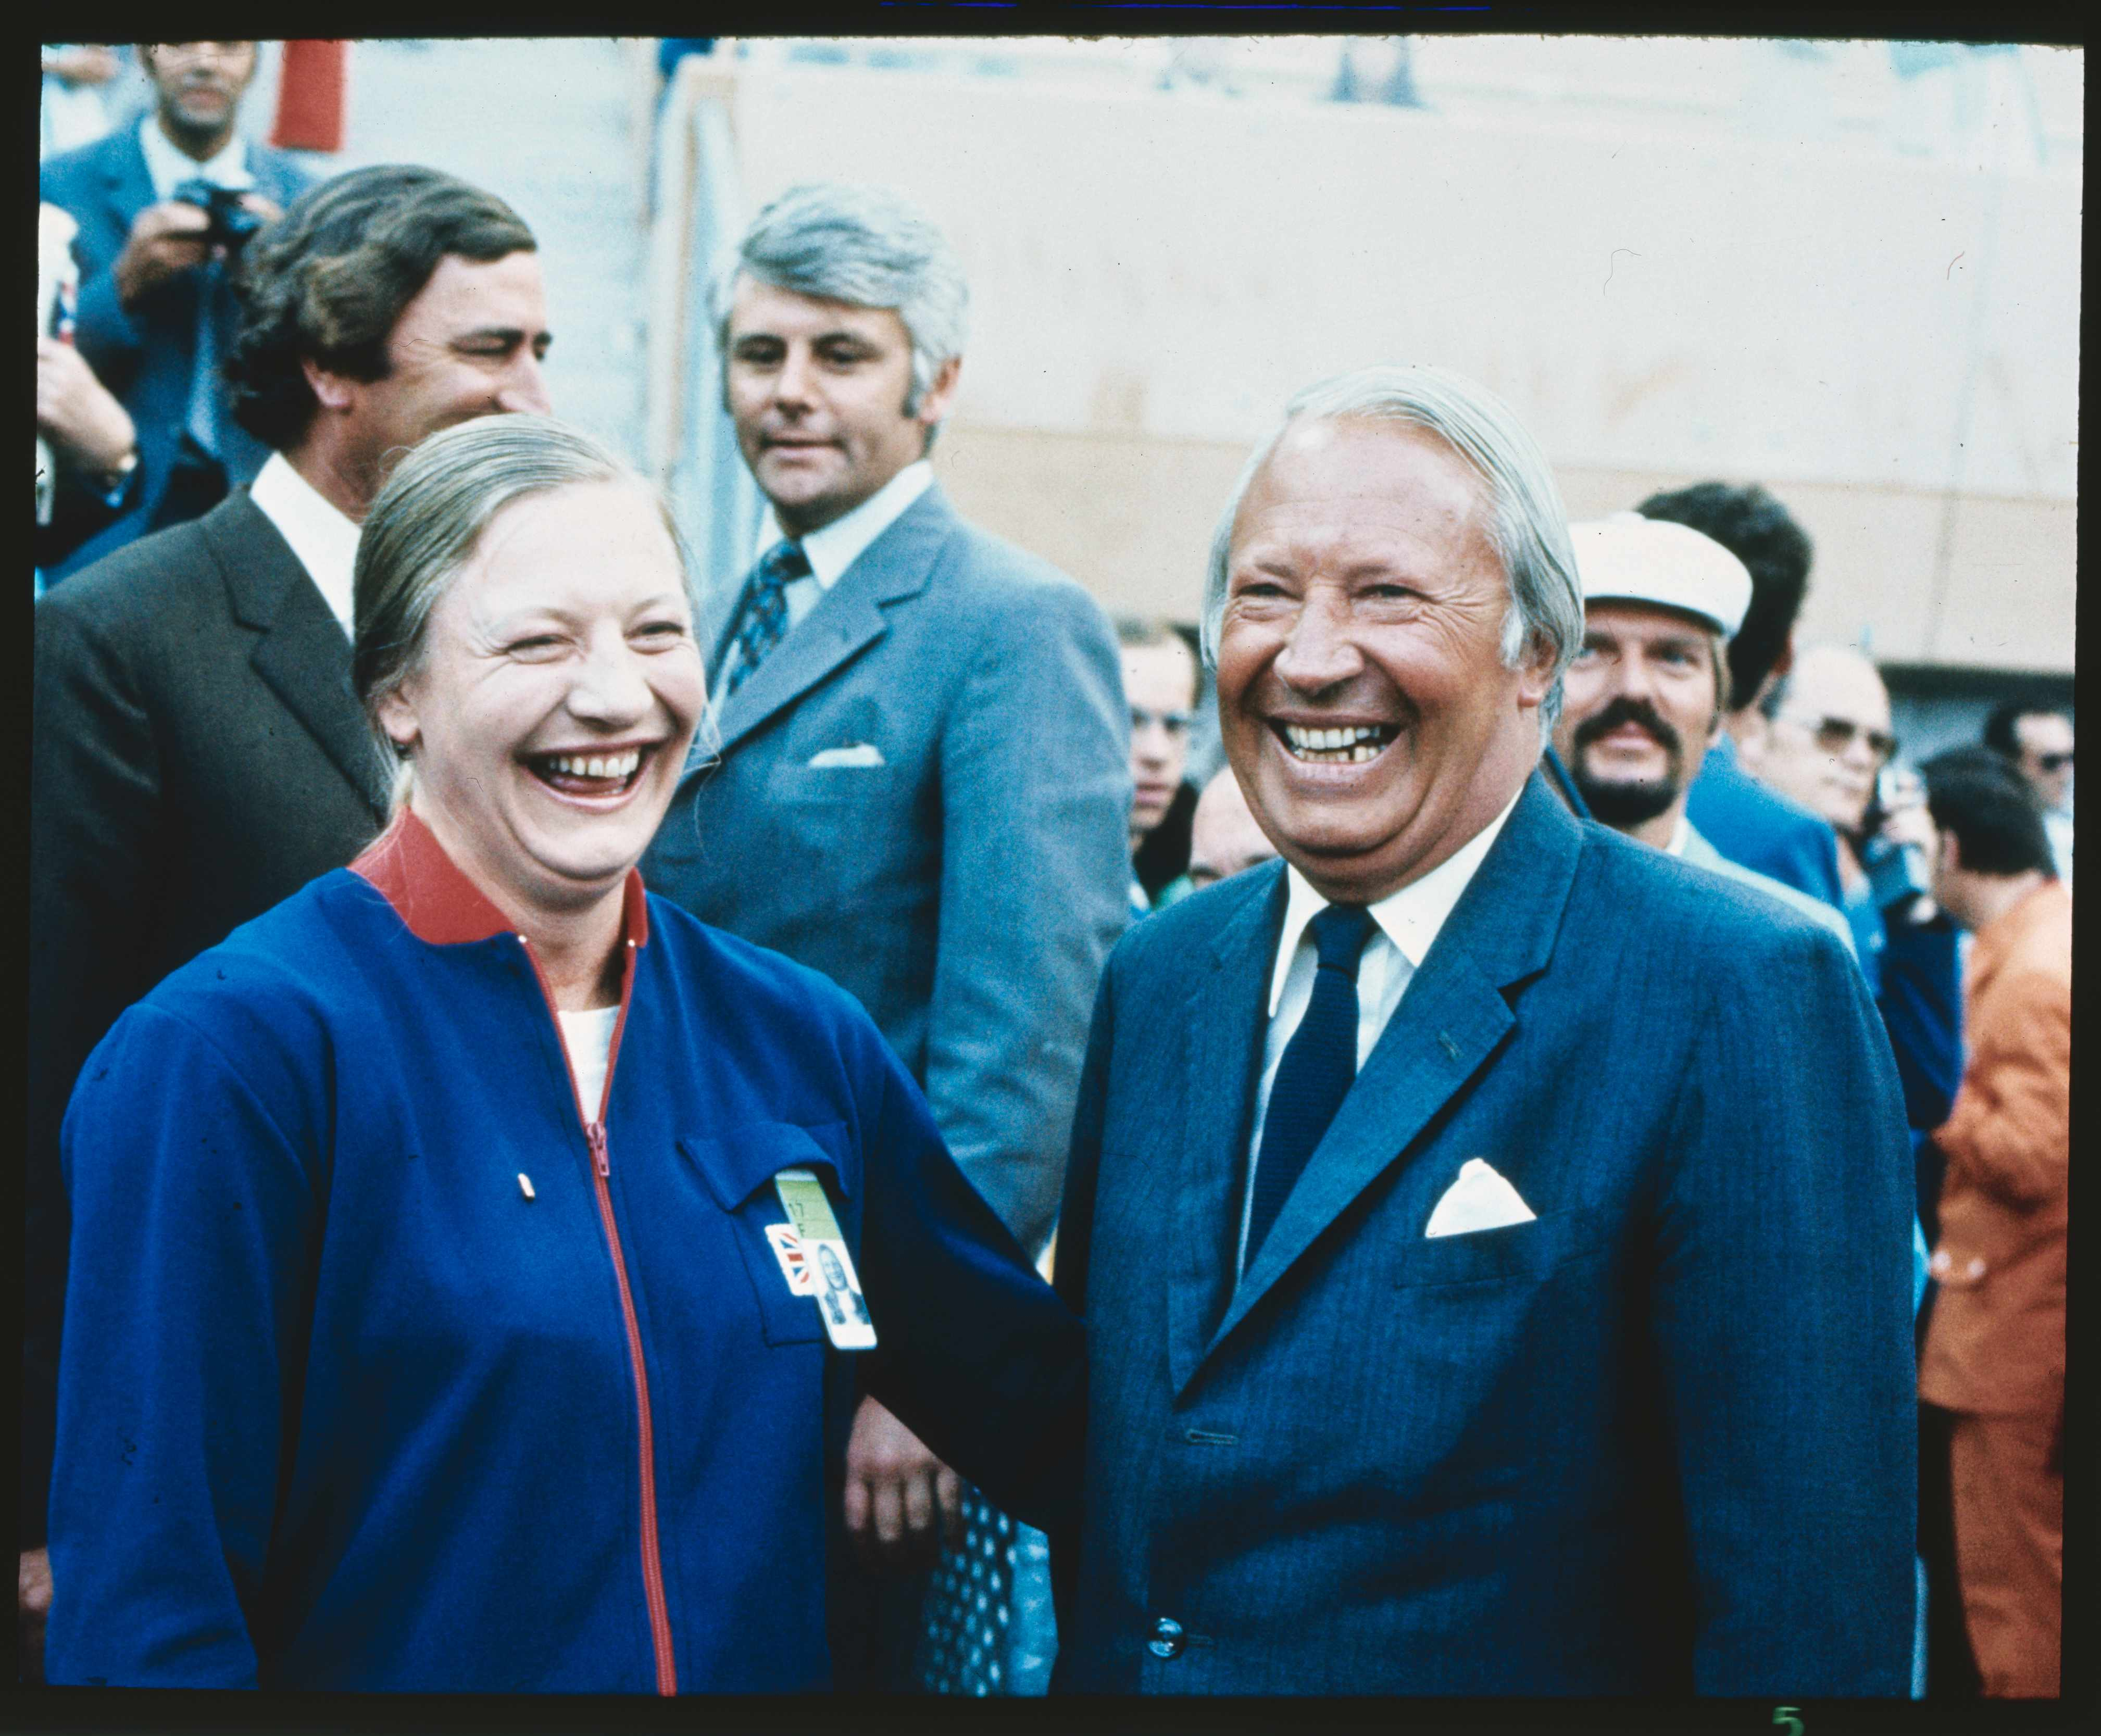 British prime minister Edward Heath with Olympic gold medal winner Mary Peters. (Bettmann/Getty Images)